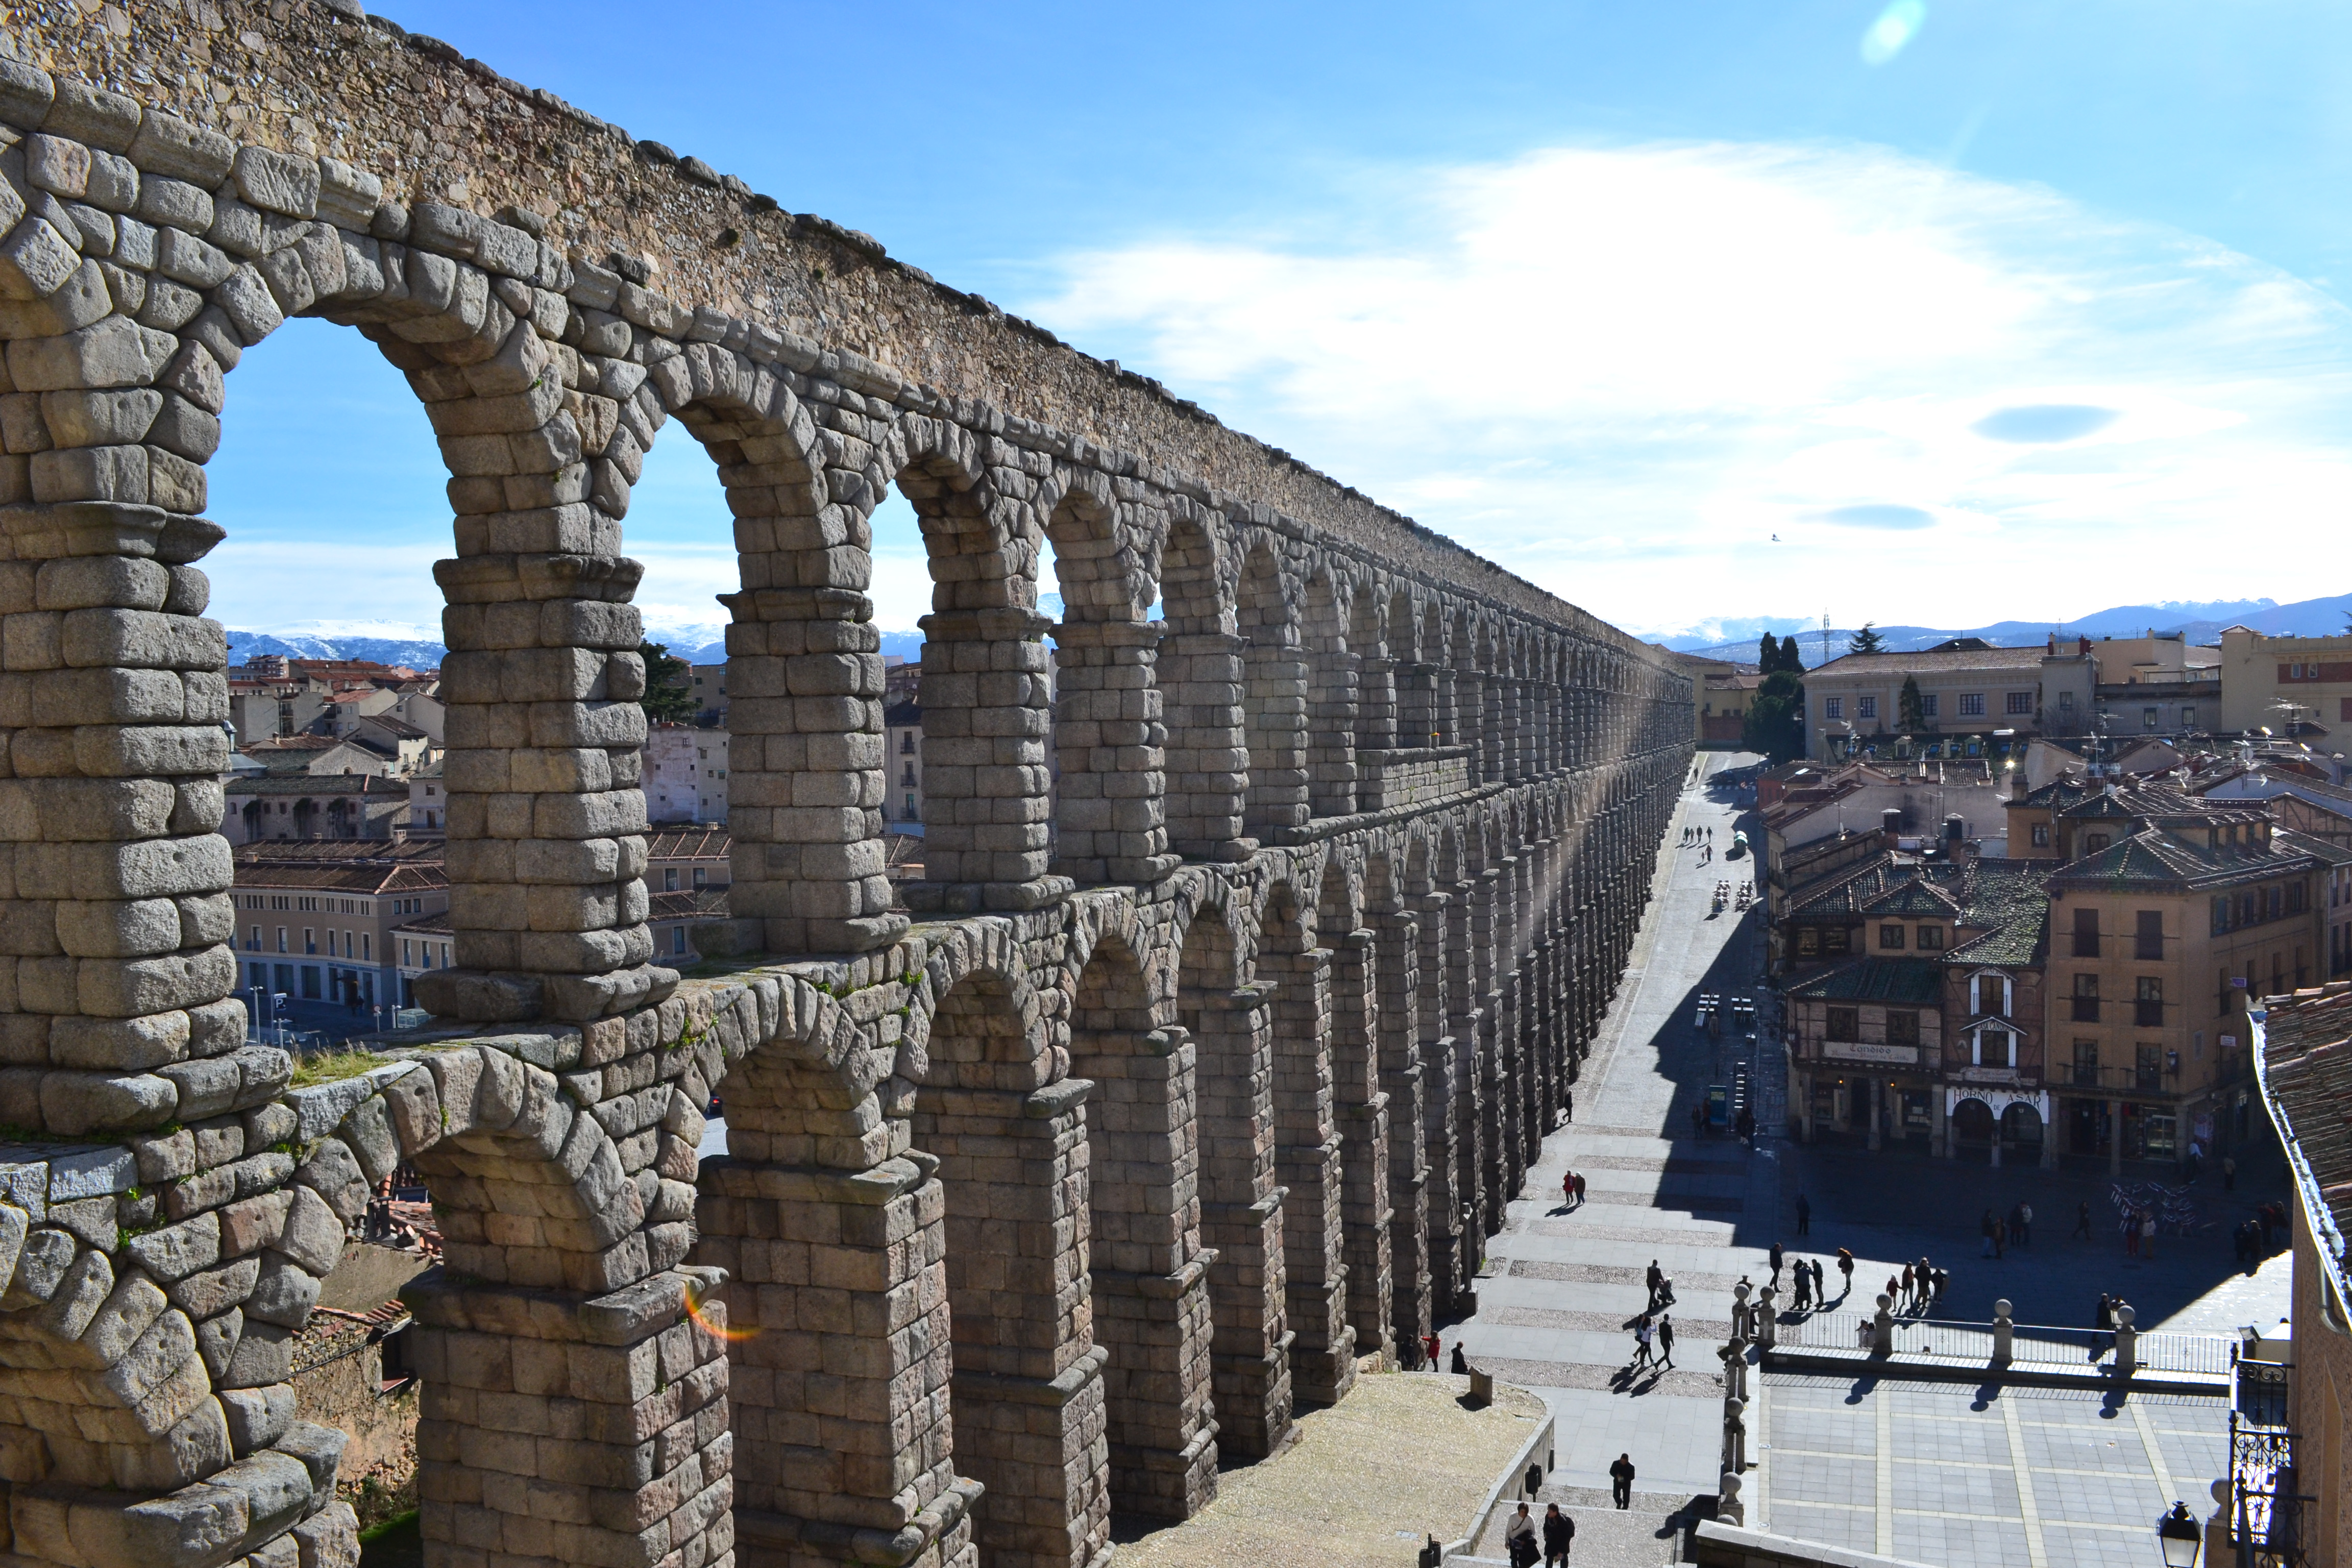 Elaborate aqueducts created by the ancient Romans brought clean running water to the inhabitants of ancient Rome.